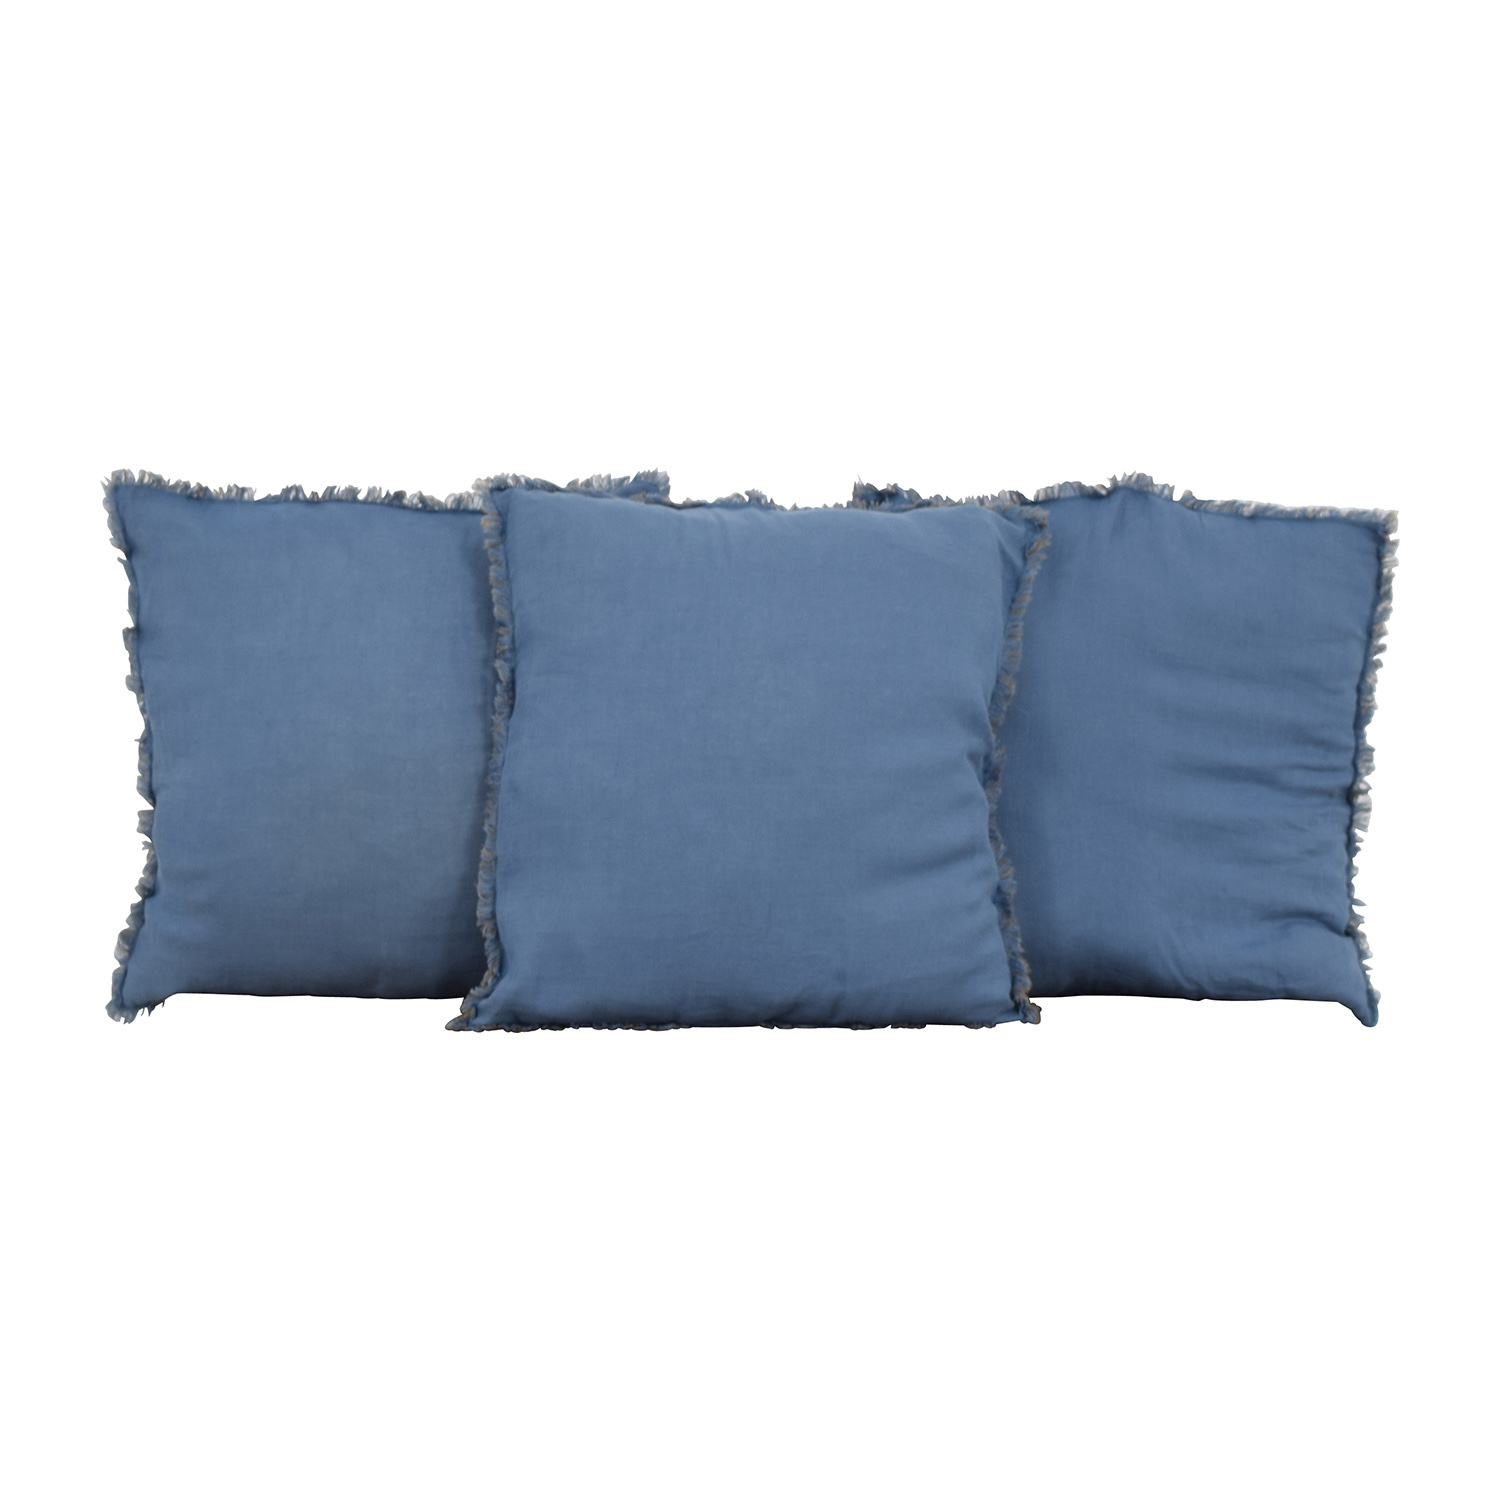 Reversible Blue and Brown Toss Pillows on sale